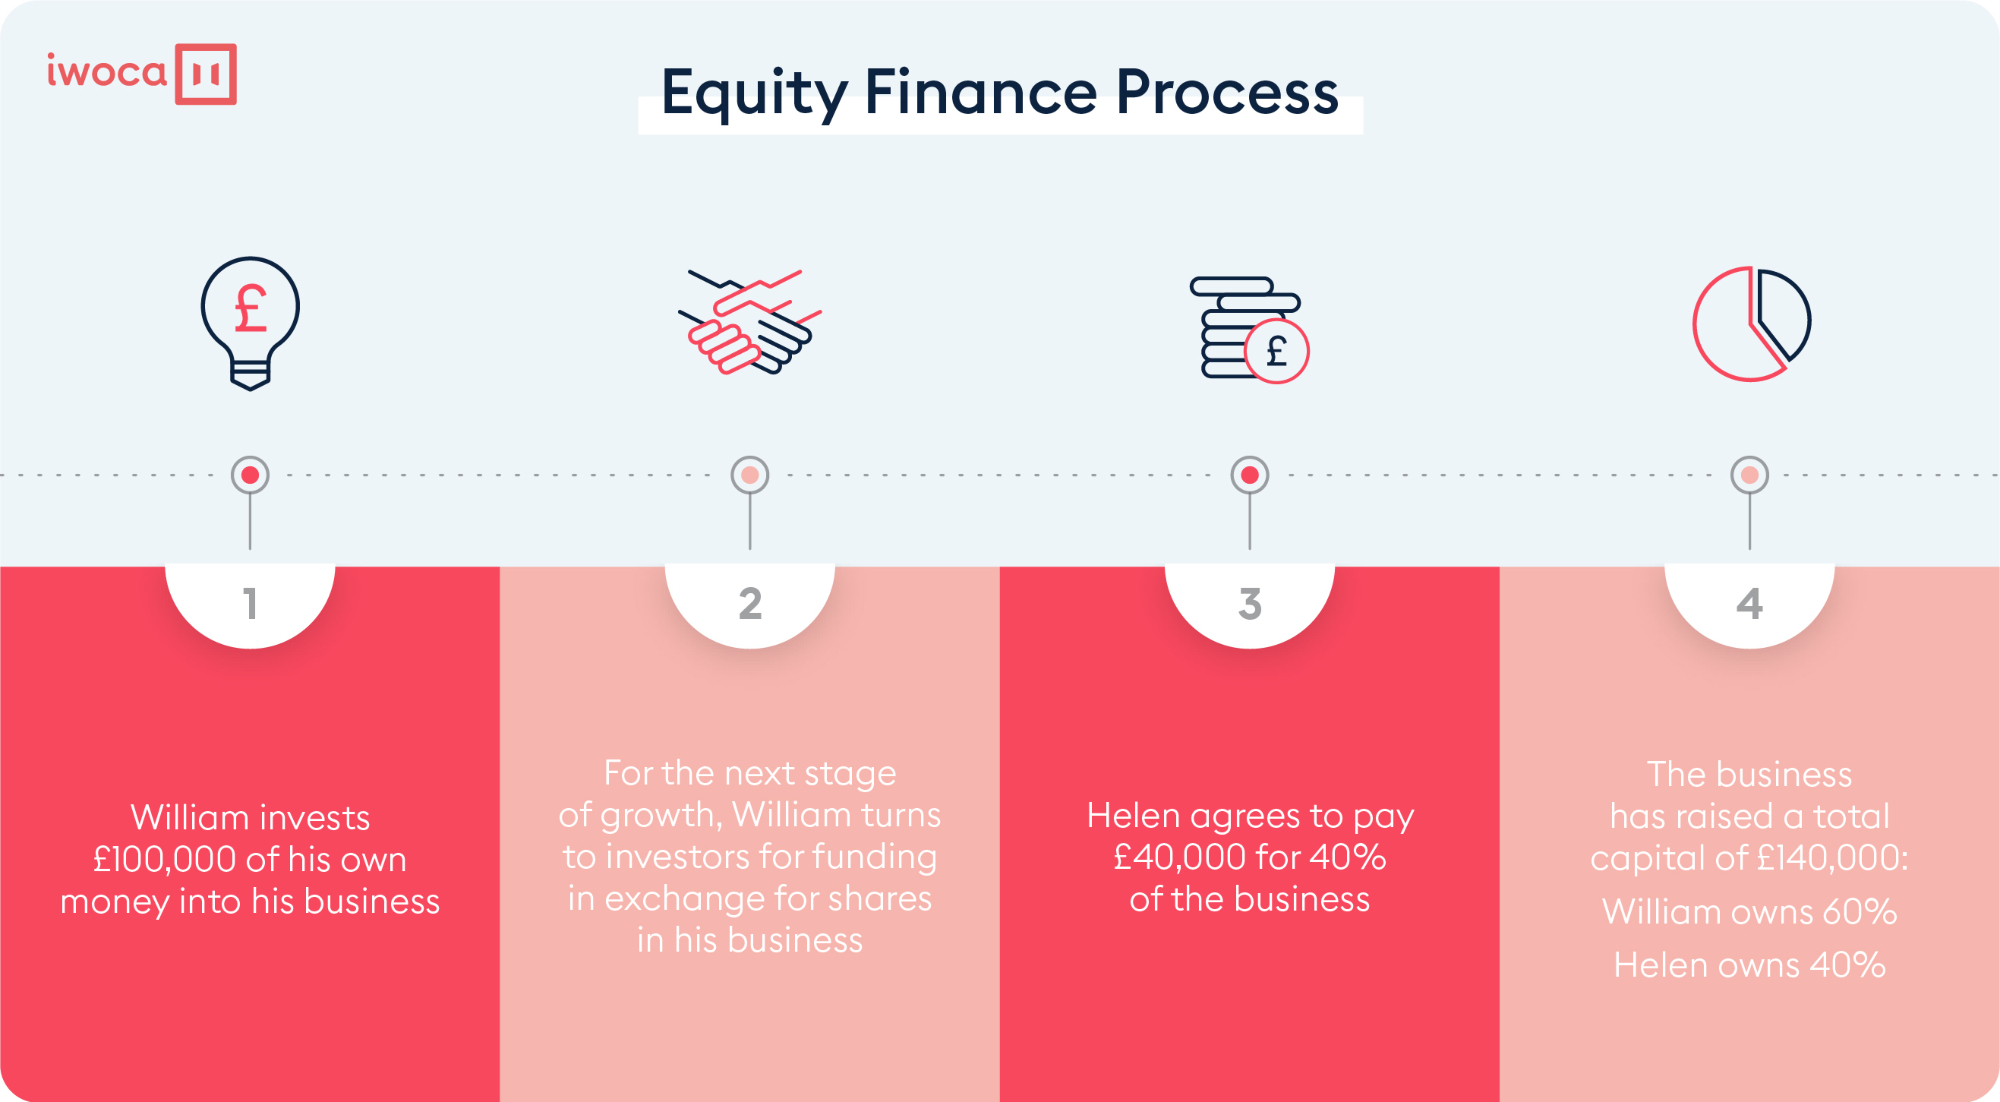 the equity finance process